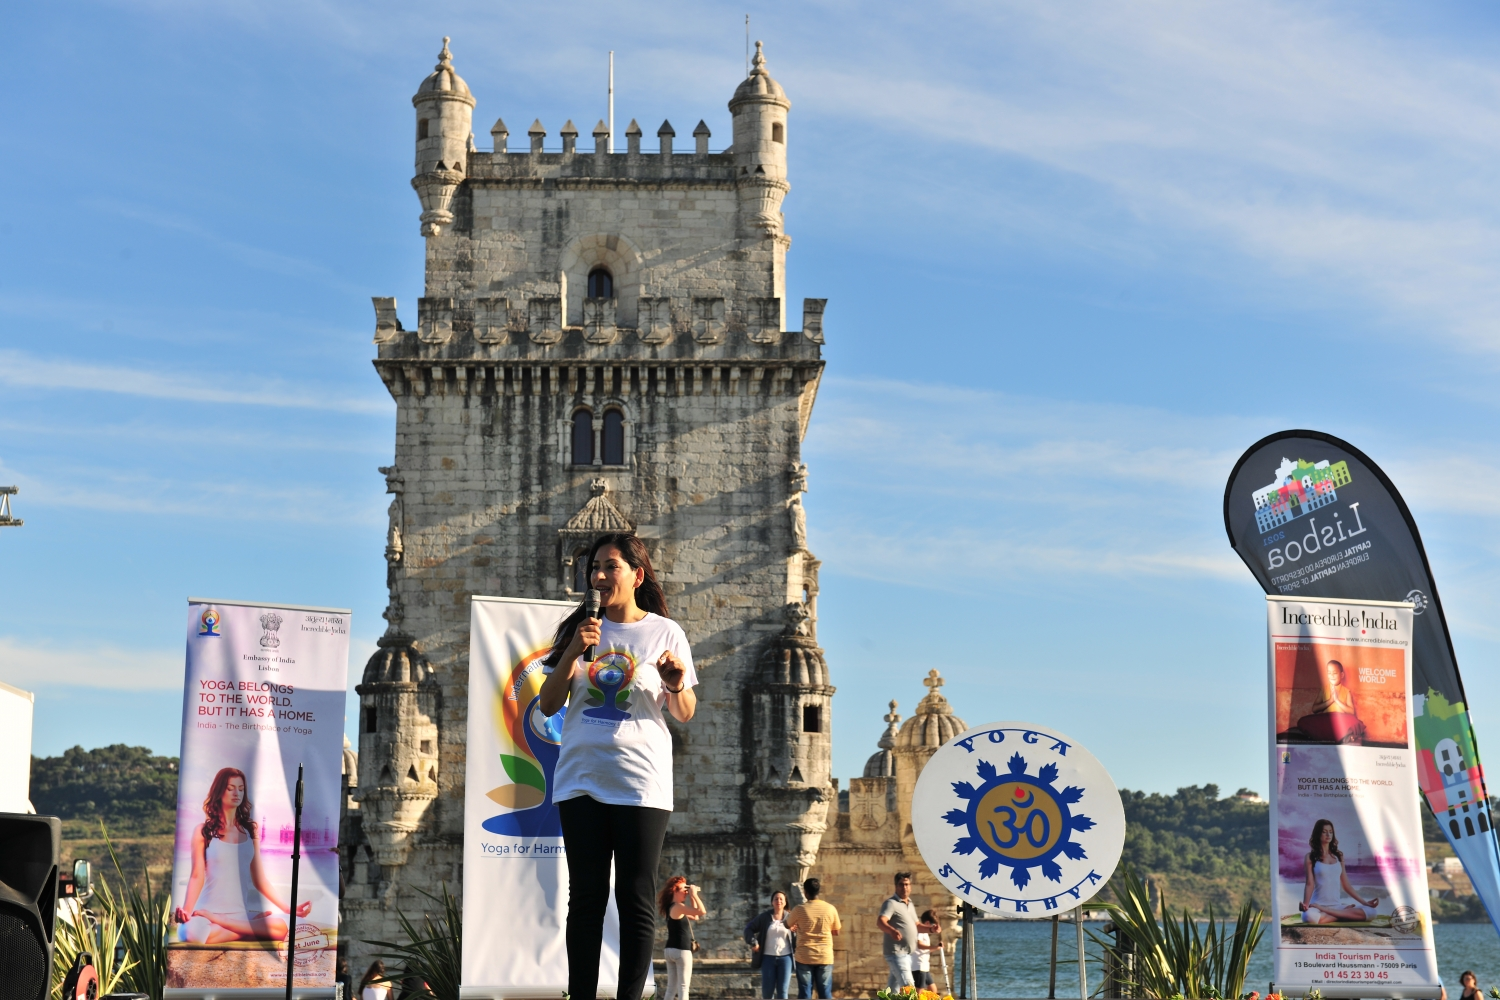 IDY - 2019, June, 21st - Belém - H.E. the Ambassador of India to Portugal Srhímati. K. Nandini Singla